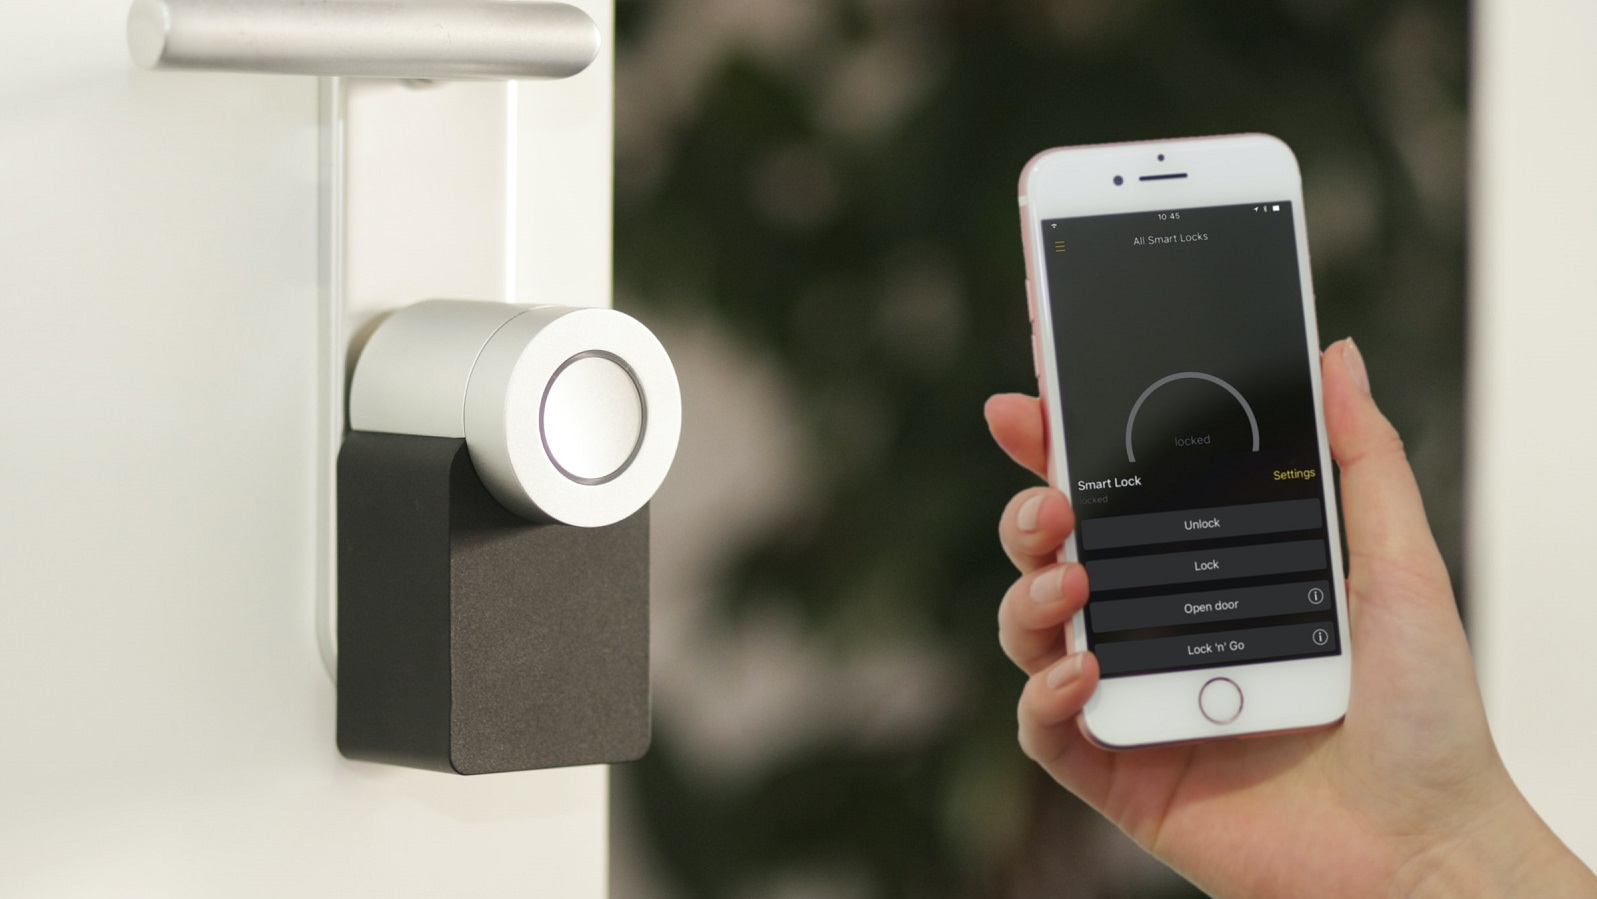 Smart lock example photo